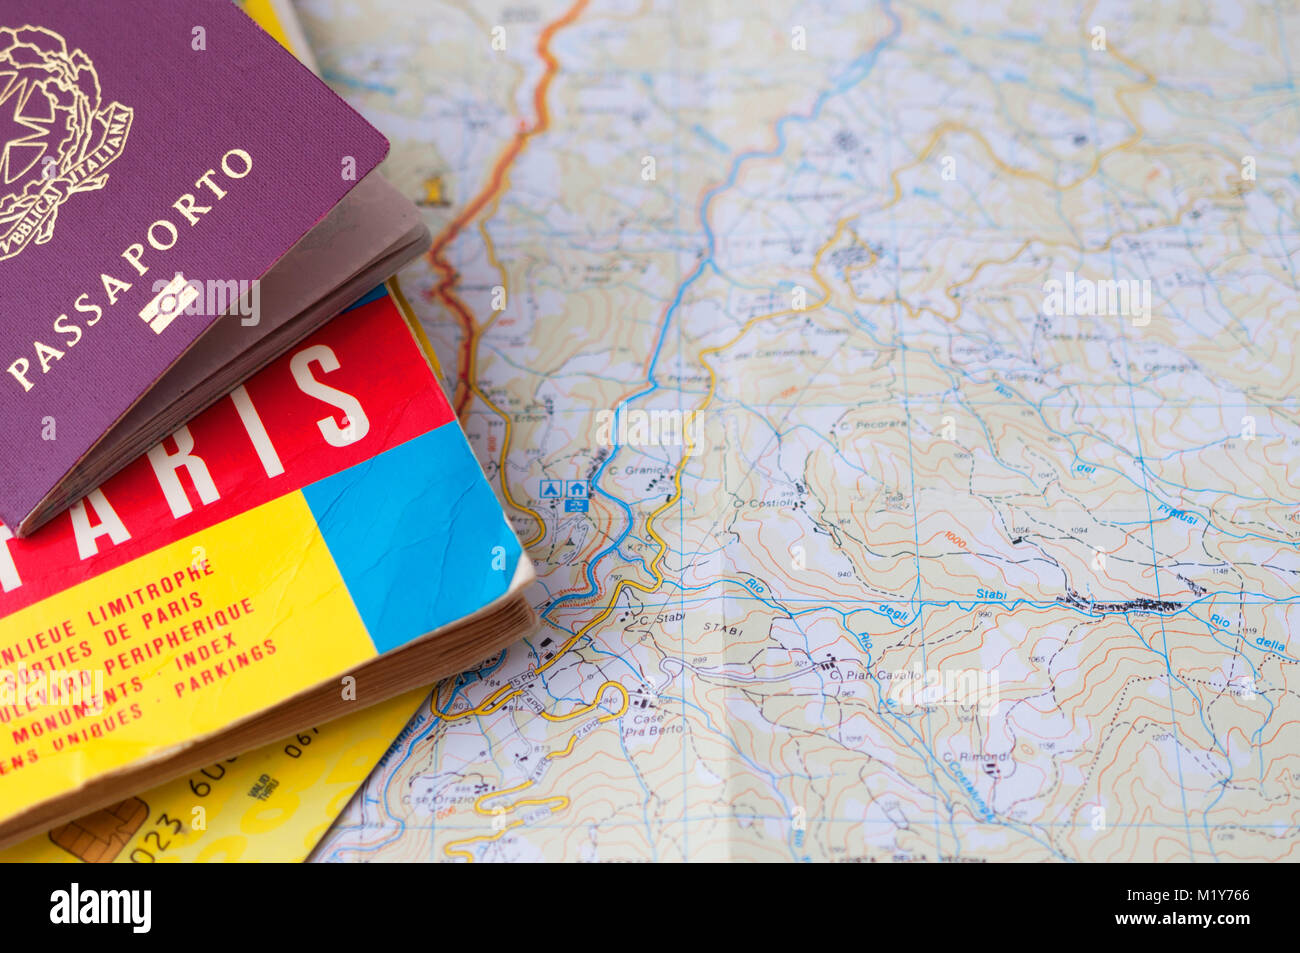 Passport over a map and a credit card - Stock Image